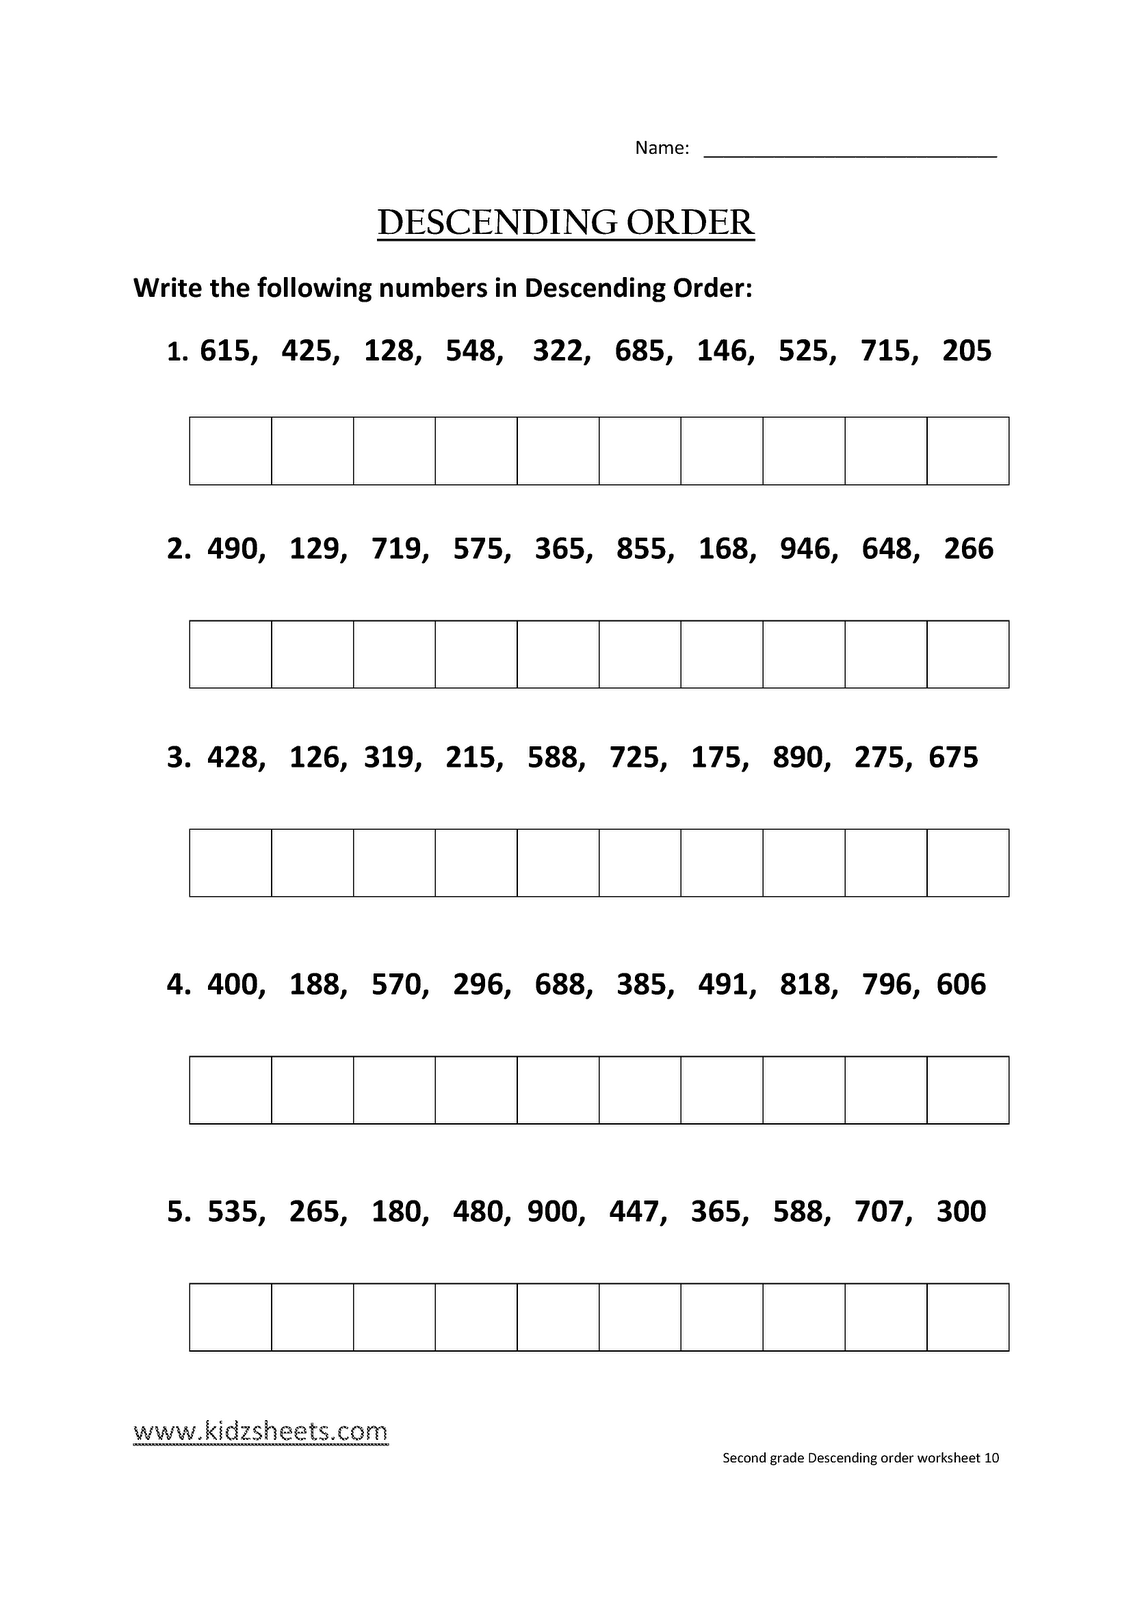 Kidz Worksheets Second Grade Descending Order Worksheet10